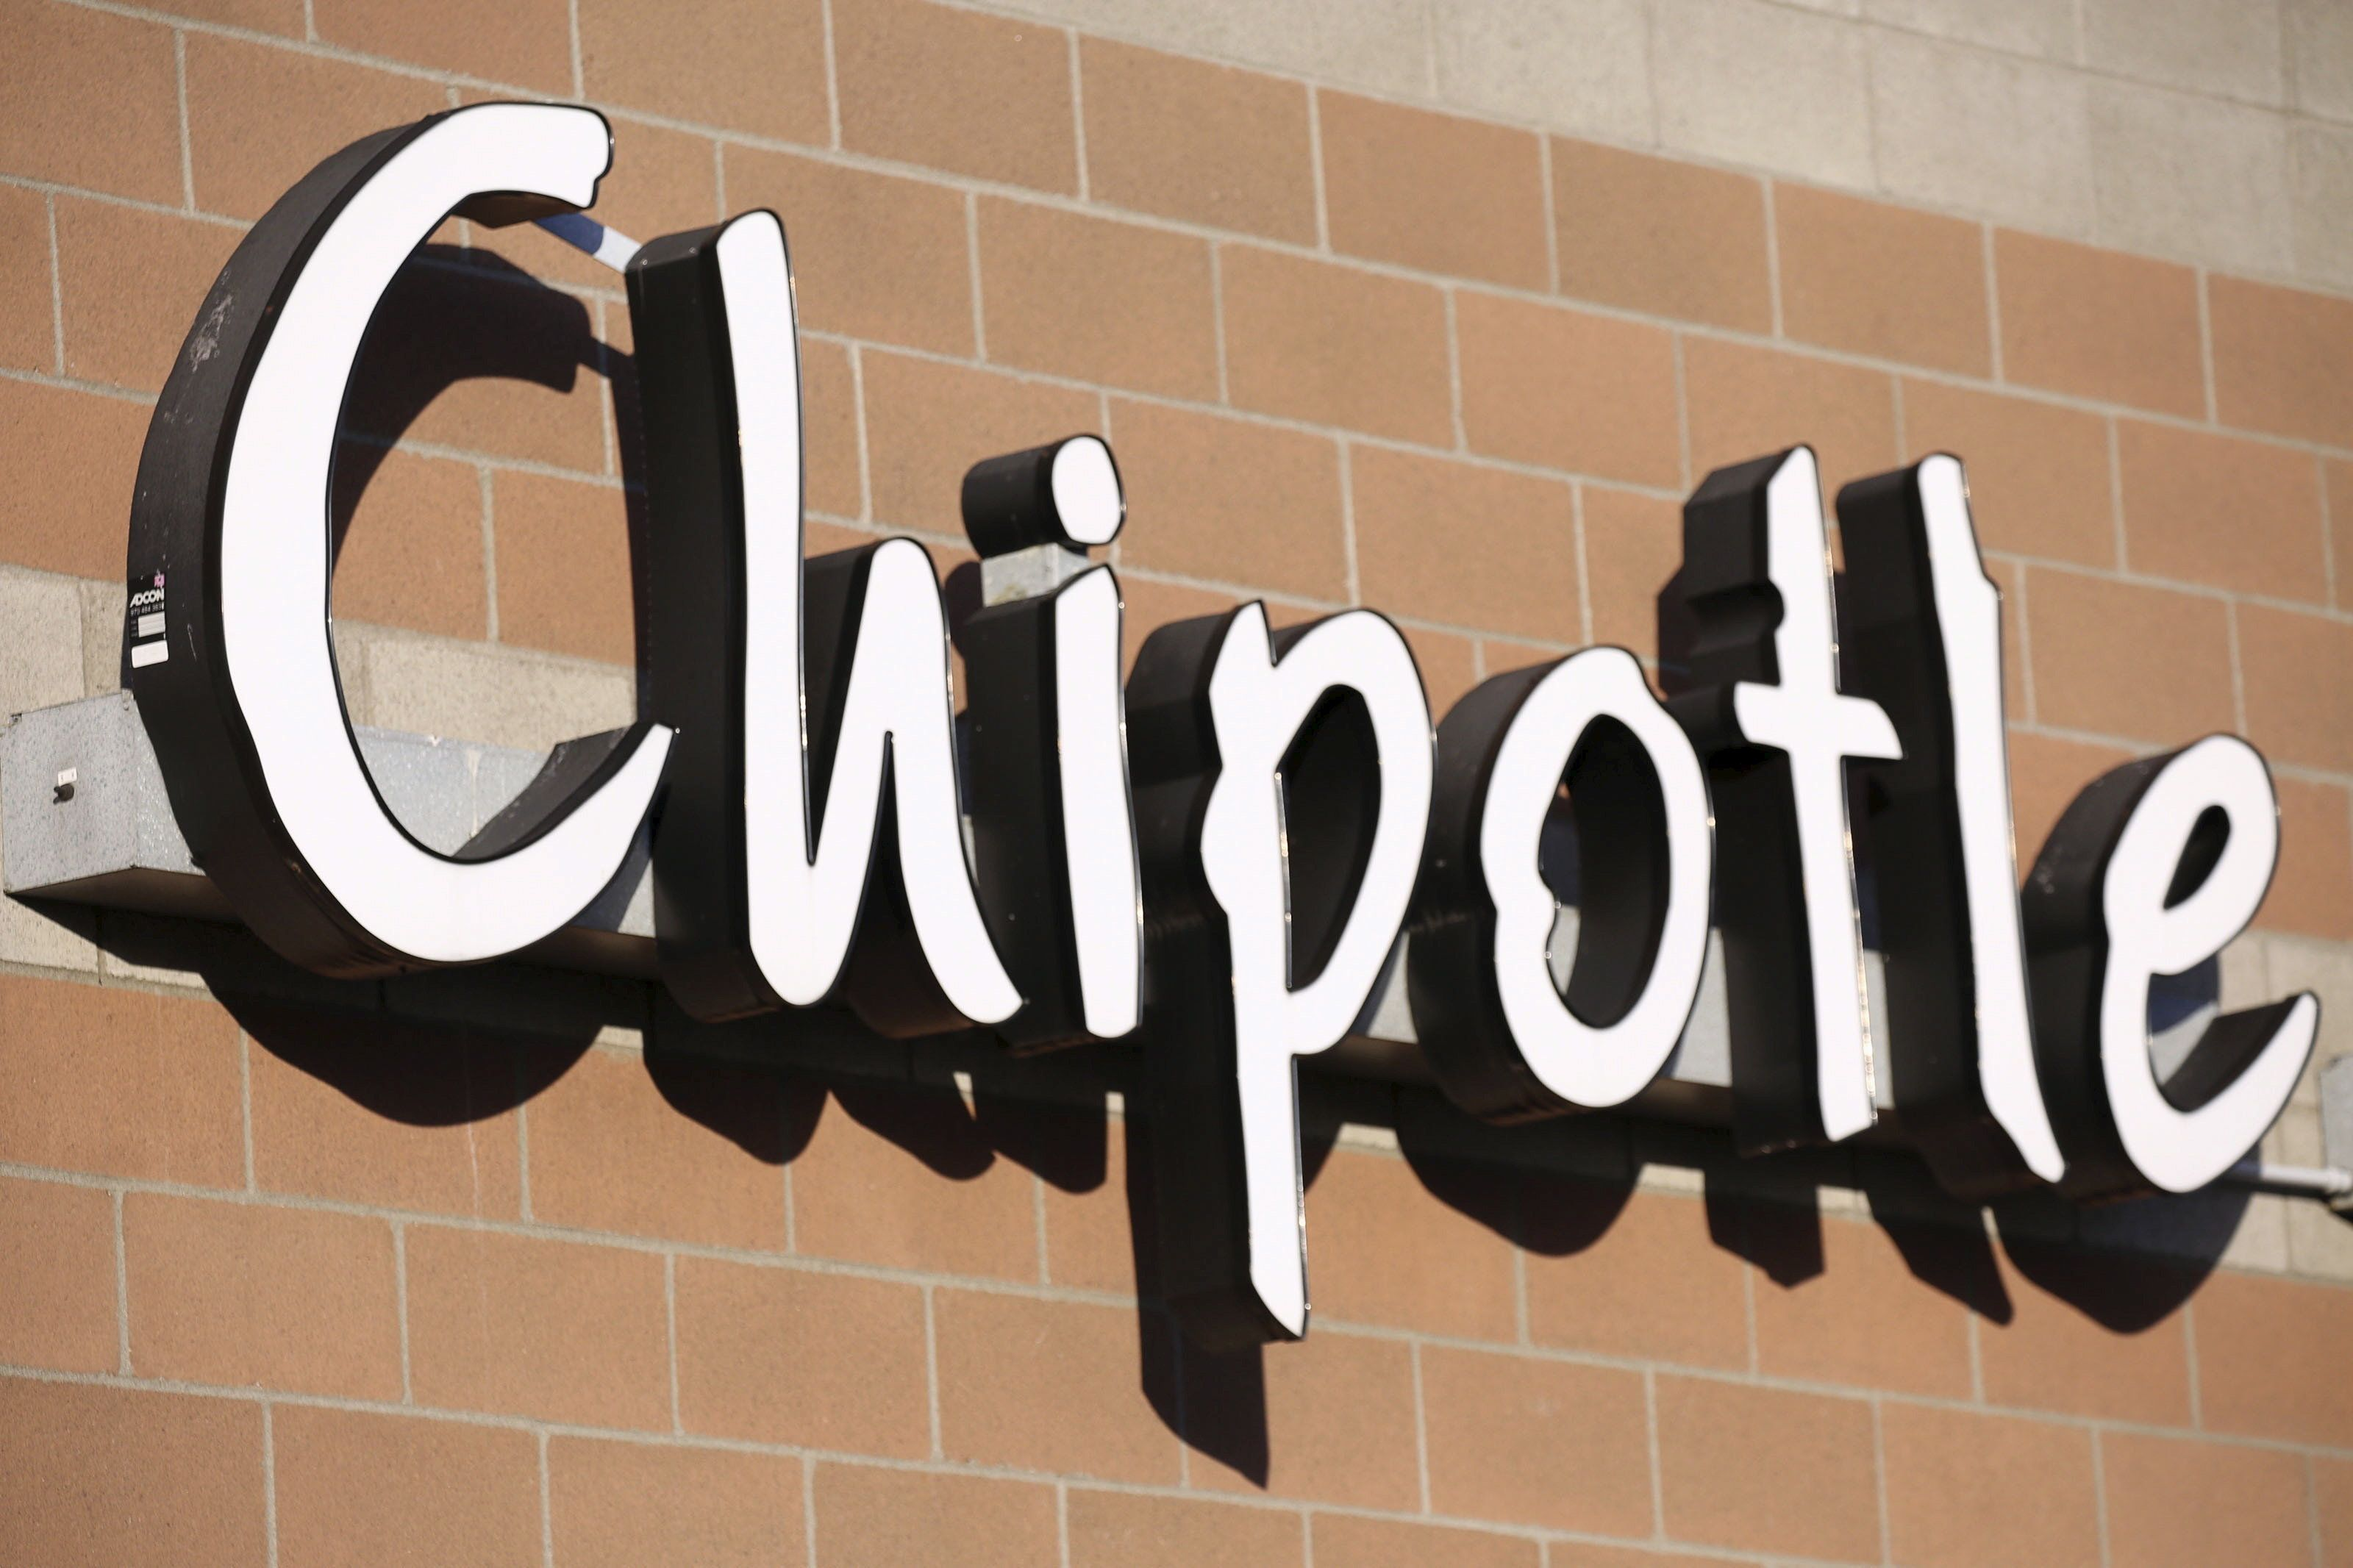 The sign of a Chipotle restaurant is shown in Federal Way, Washington November 20, 2015. The U.S. Centers for Disease Control and Prevention (CDC) said on Friday that three additional states reported E. coli infections from the same strain as the Chipotle Mexican Grill outbreak, sending shares in the chain down more than 12 percent. REUTERS/David Ryder